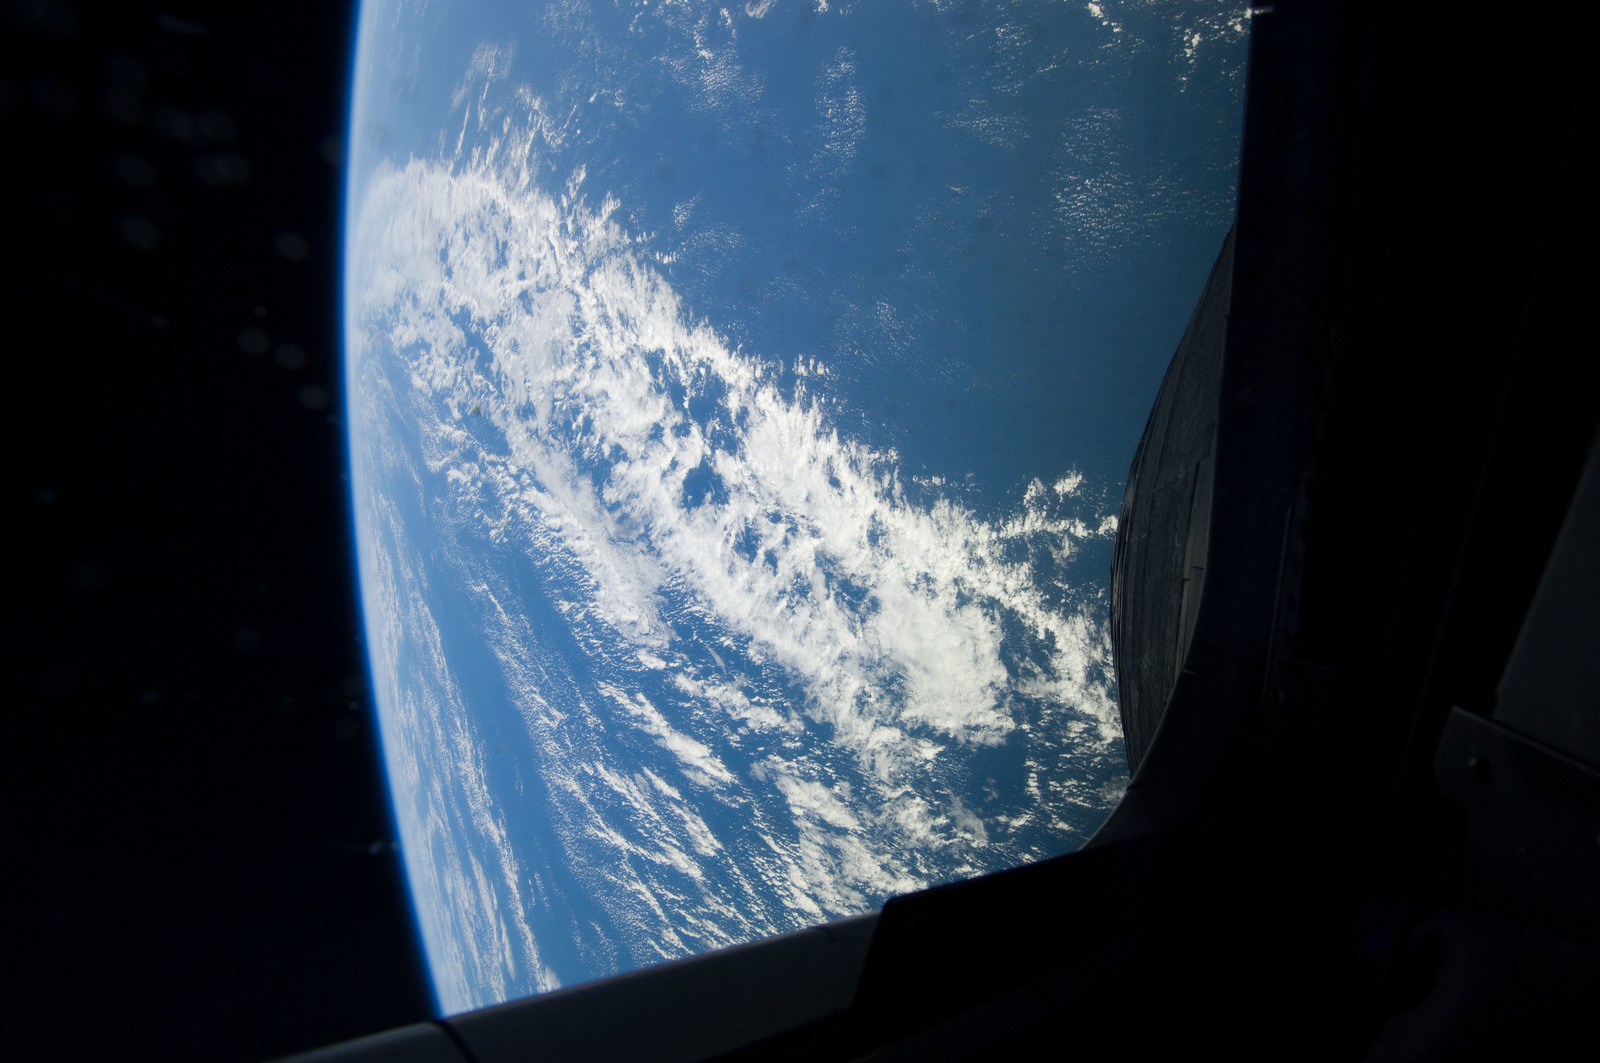 s133E006945 - STS-133 - Earth Observation taken by the STS-133 crew